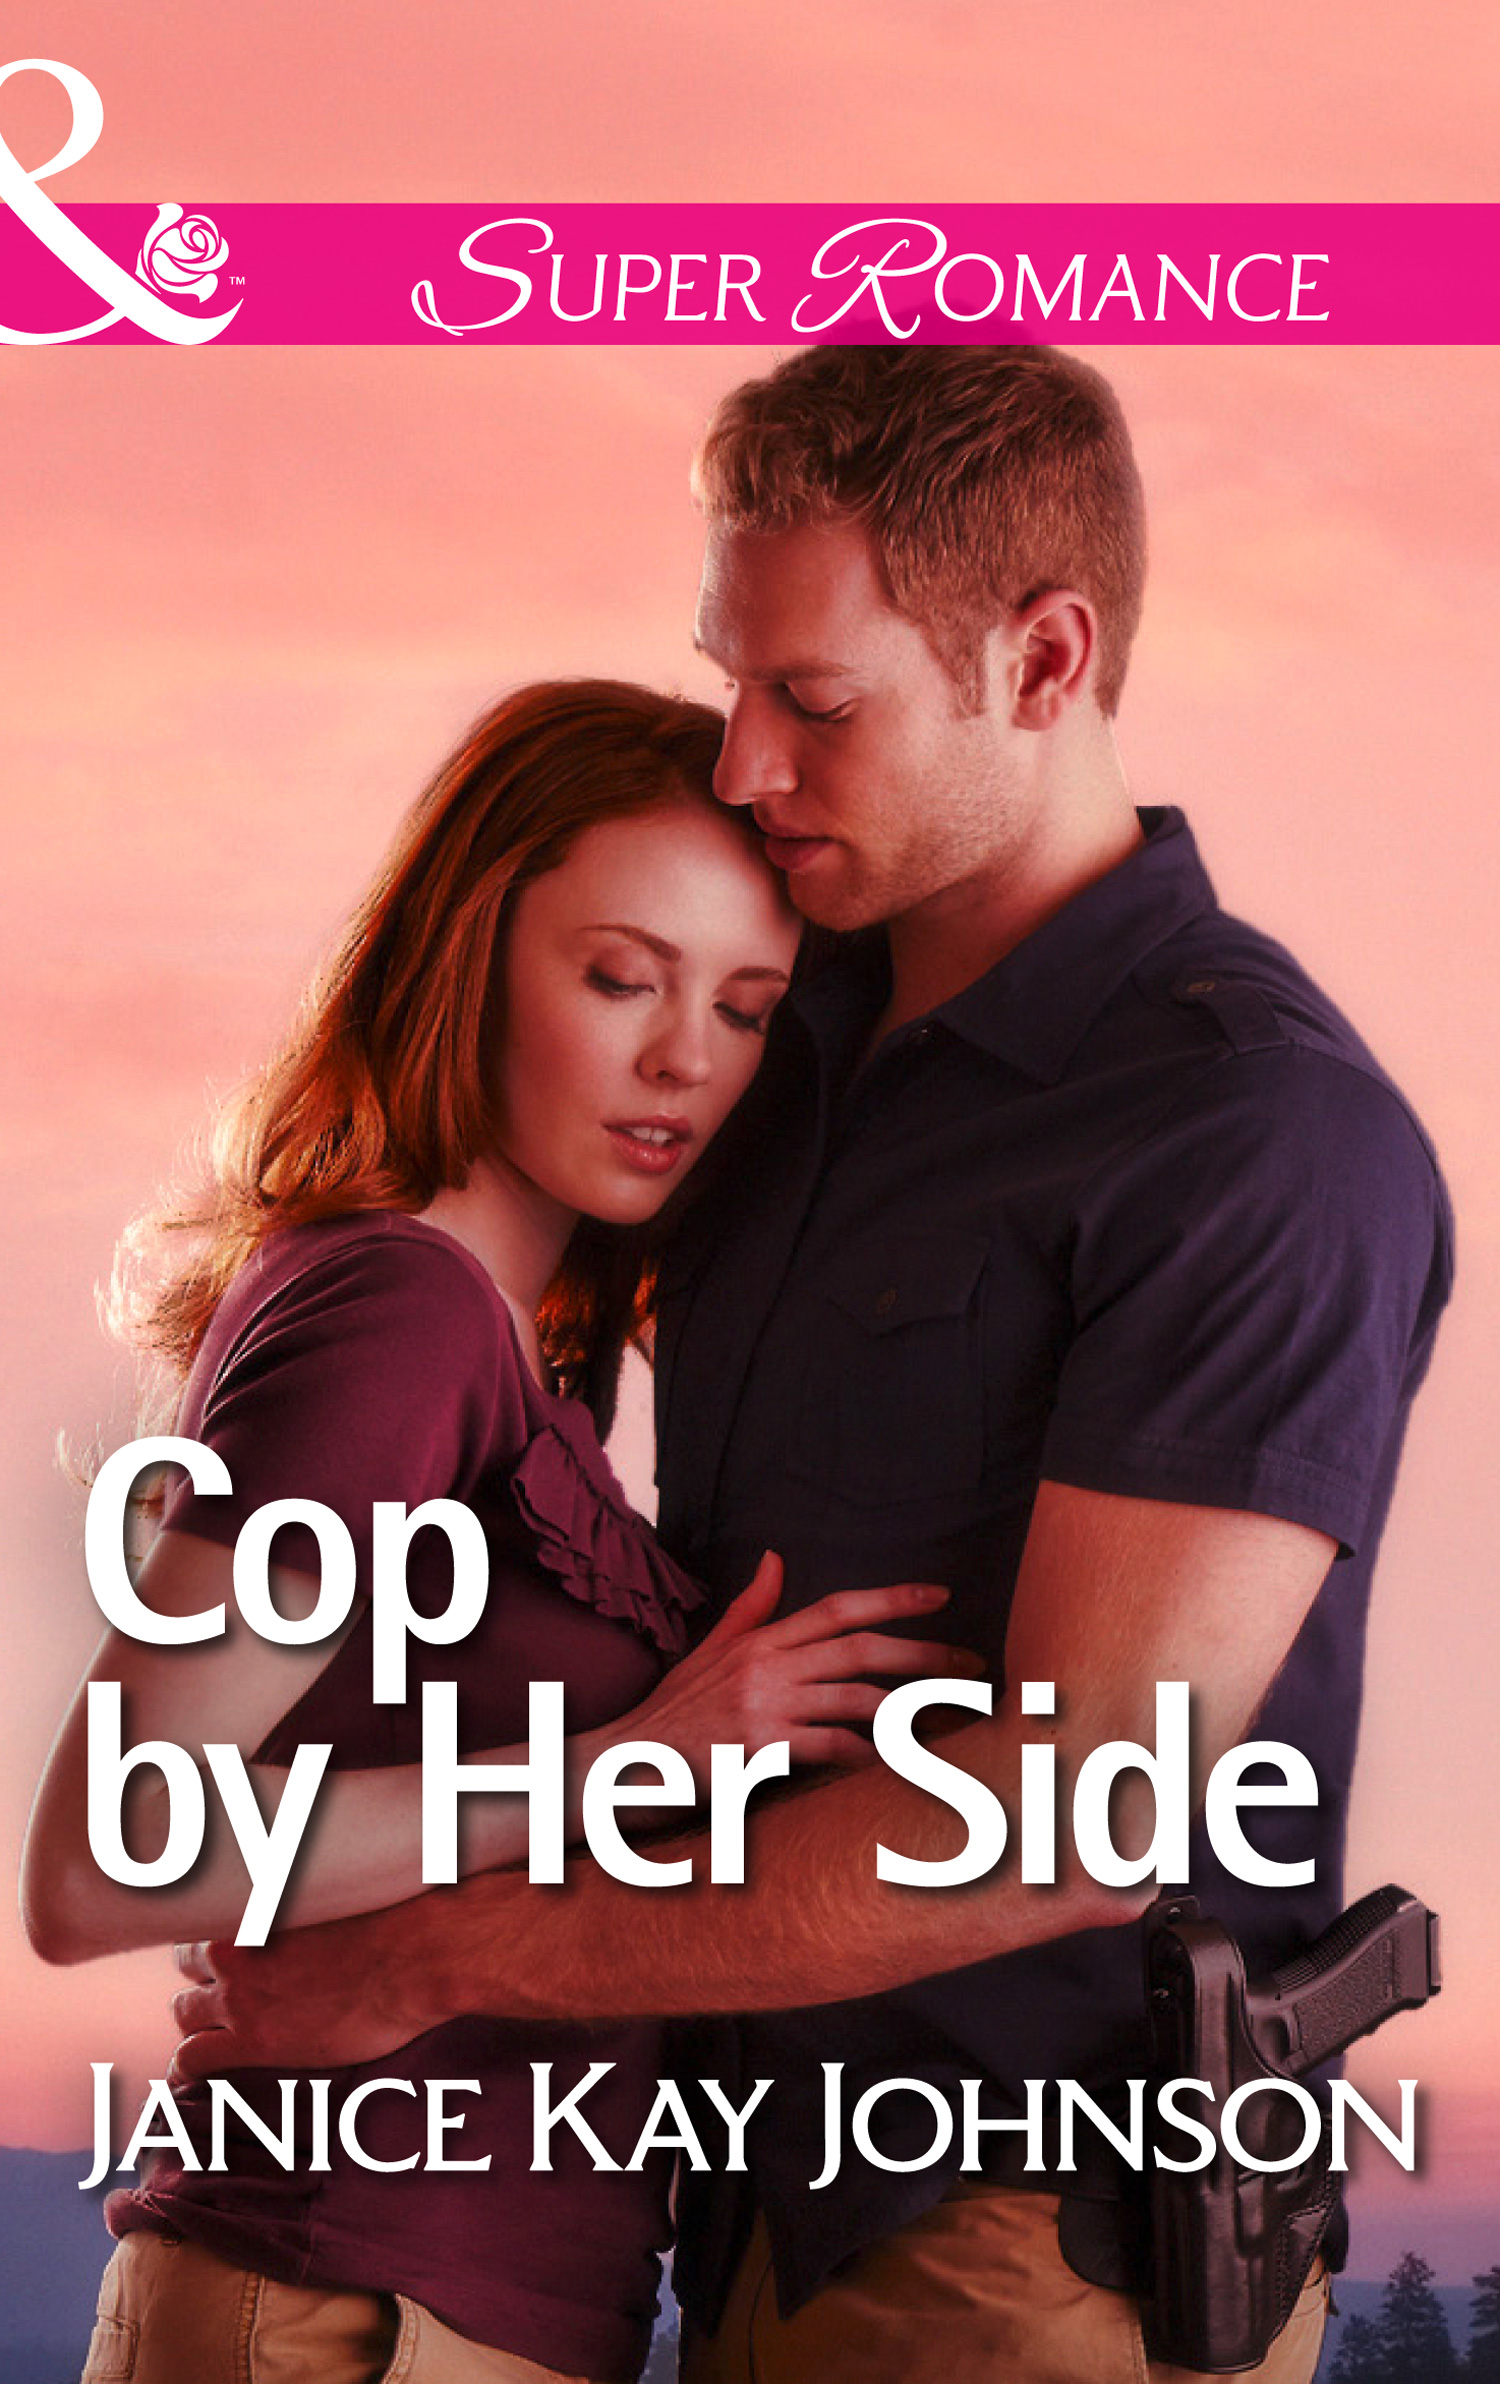 Cop by Her Side